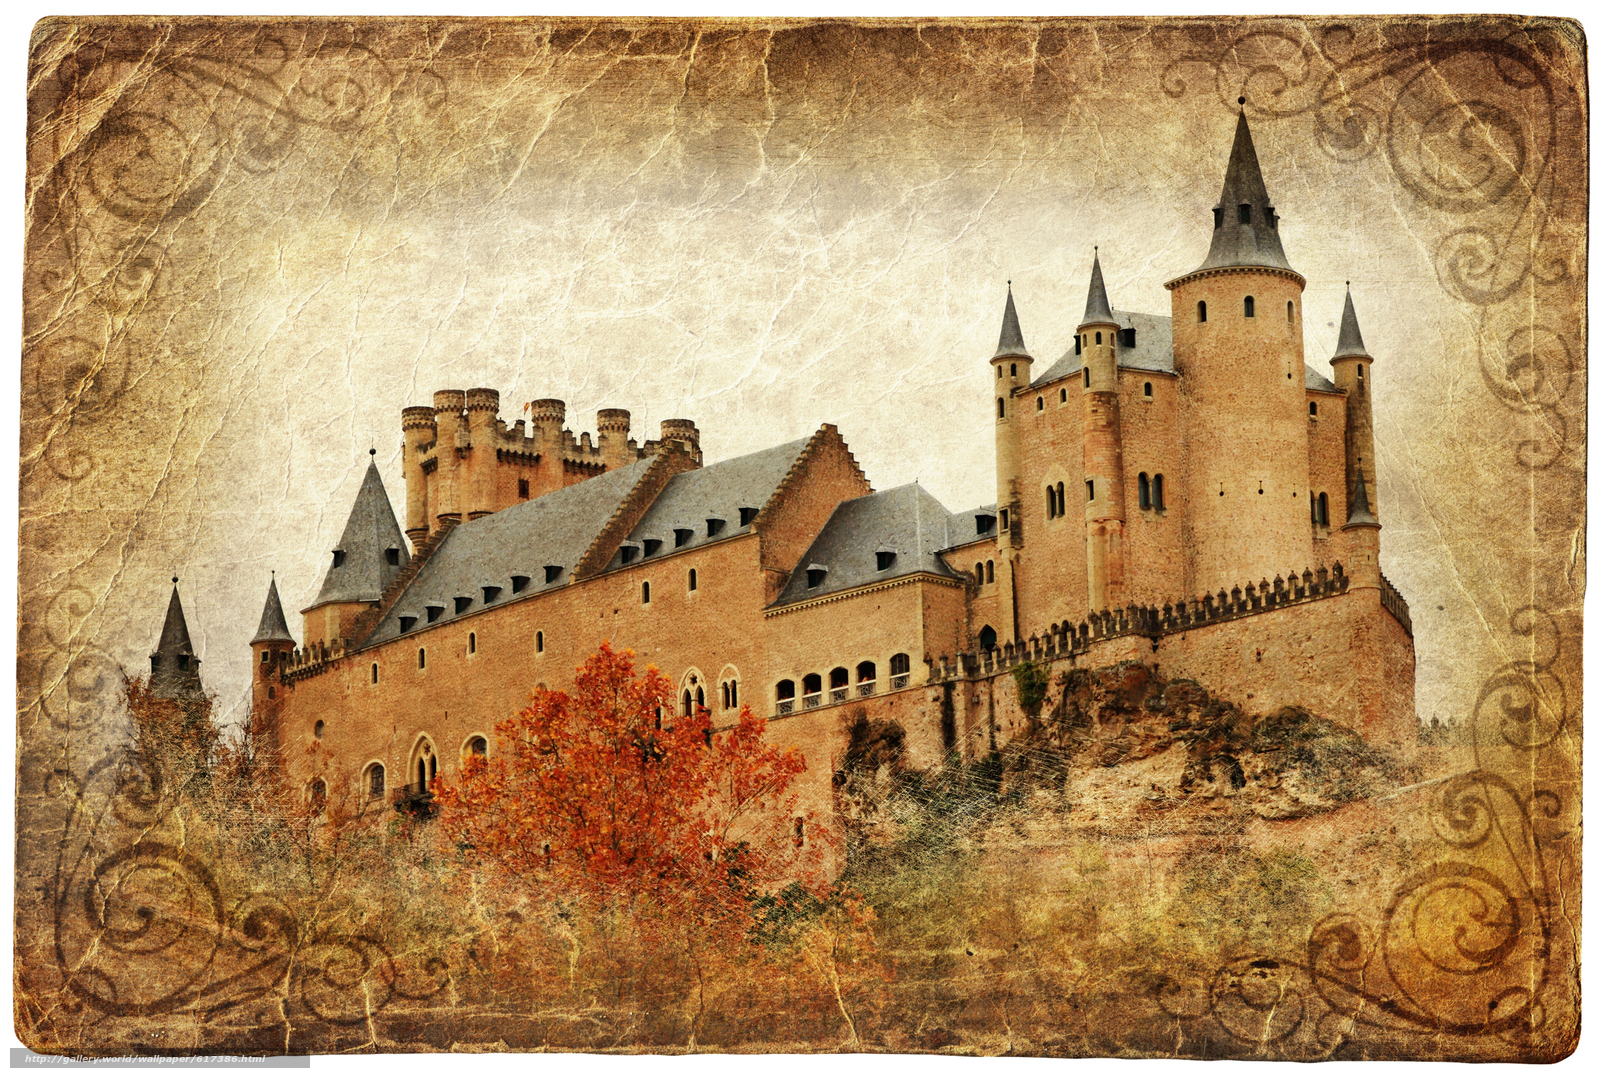 Download wallpaper Alcazar castle,  Segovia,  Spain,  vintage free desktop wallpaper in the resolution 6084x4100 — picture №617386